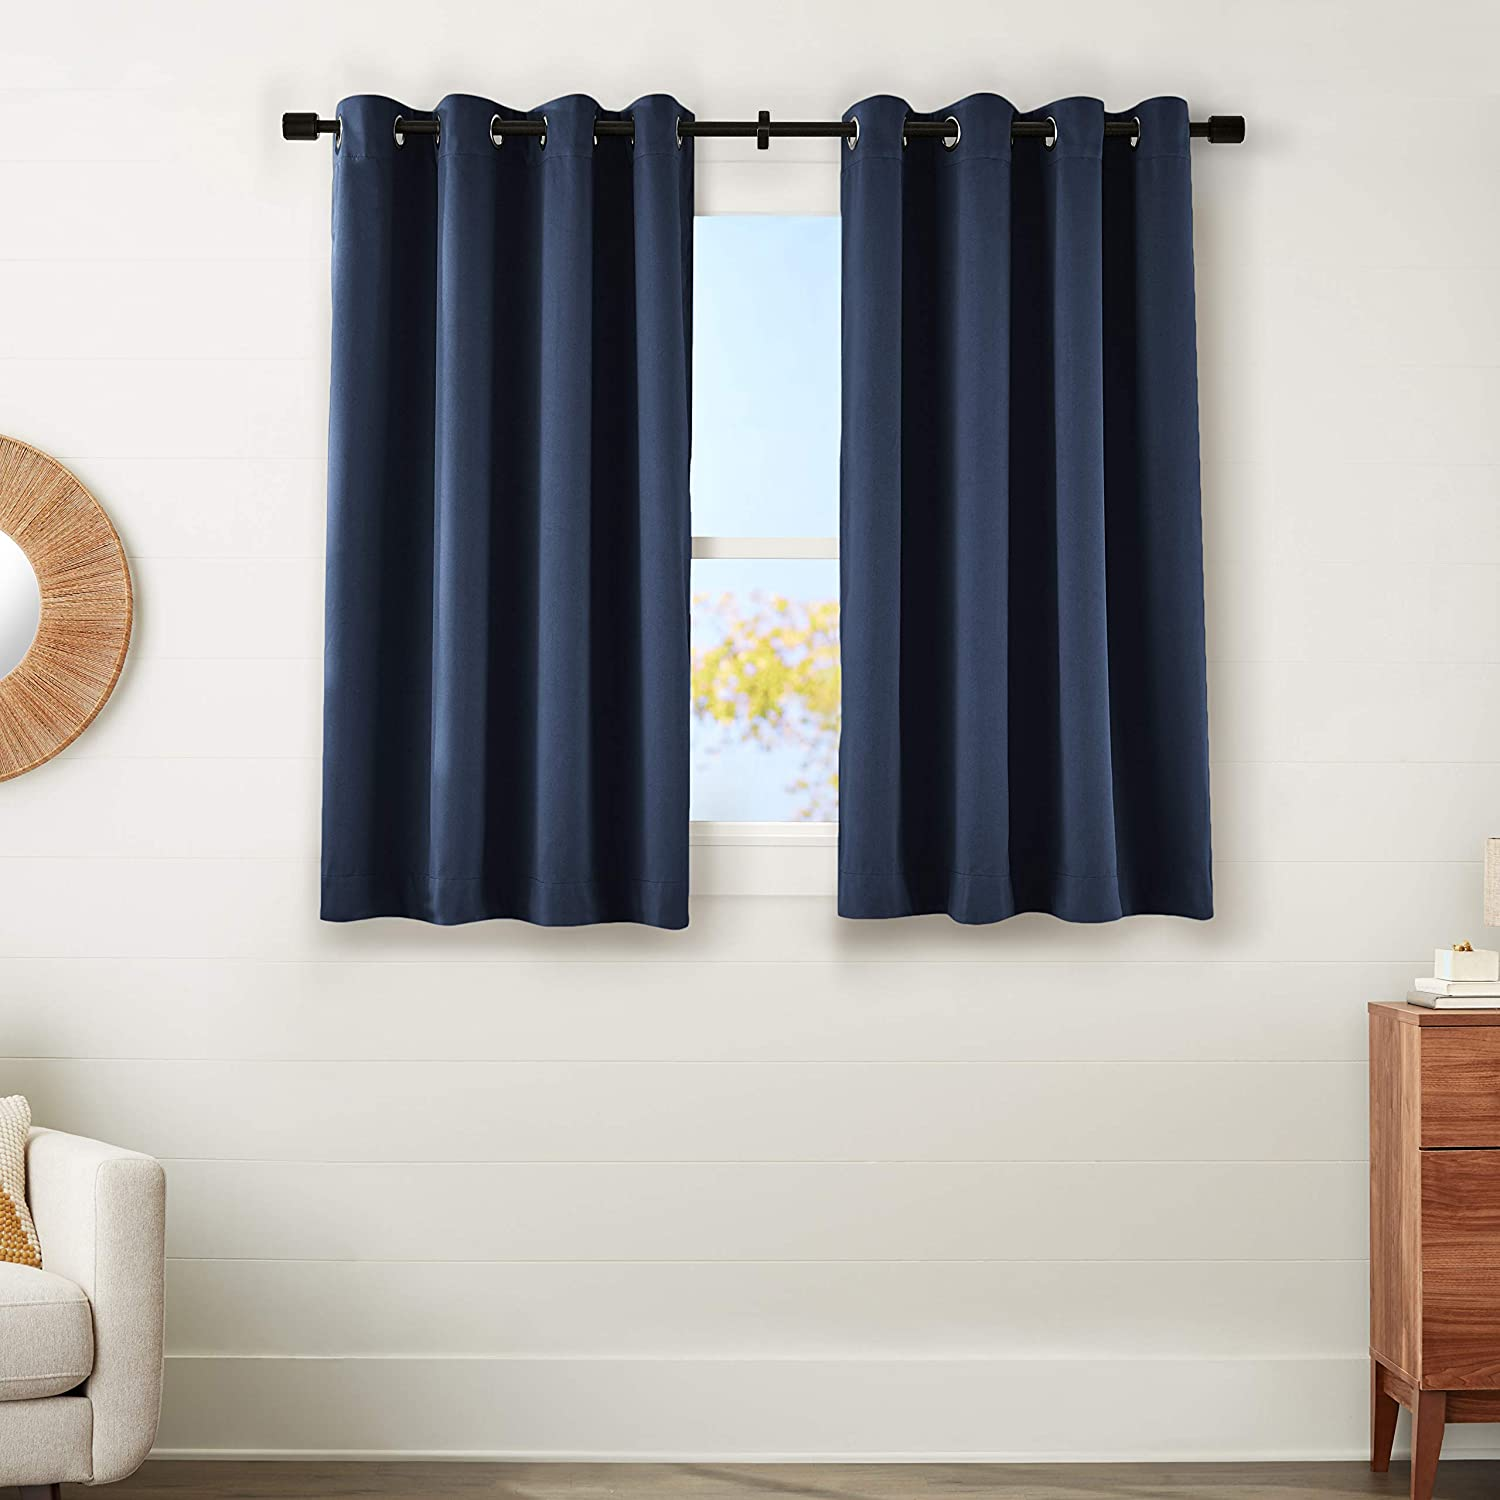 "AmazonBasics 99% Room Darkening Theatre Grade Heavyweight Window Panel with Grommets and Thermal Insulated, Noise Reducing Liner - 52"" x 63"", Navy Blue"